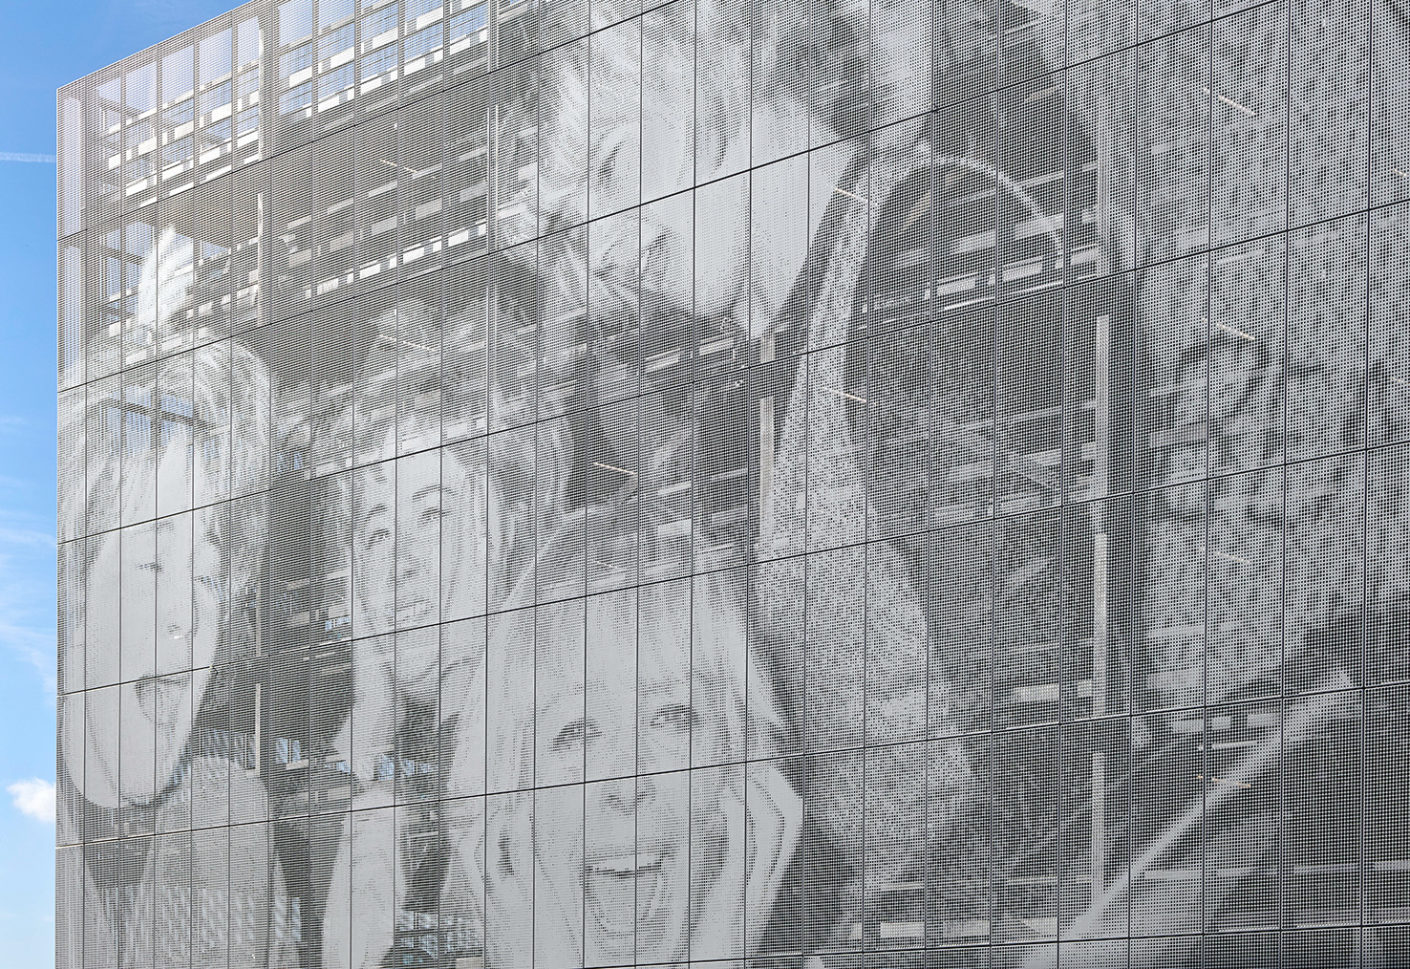 By perforating the sheets, Studio Egret West has reproduced a black and white photograph of screaming Beatles fans.